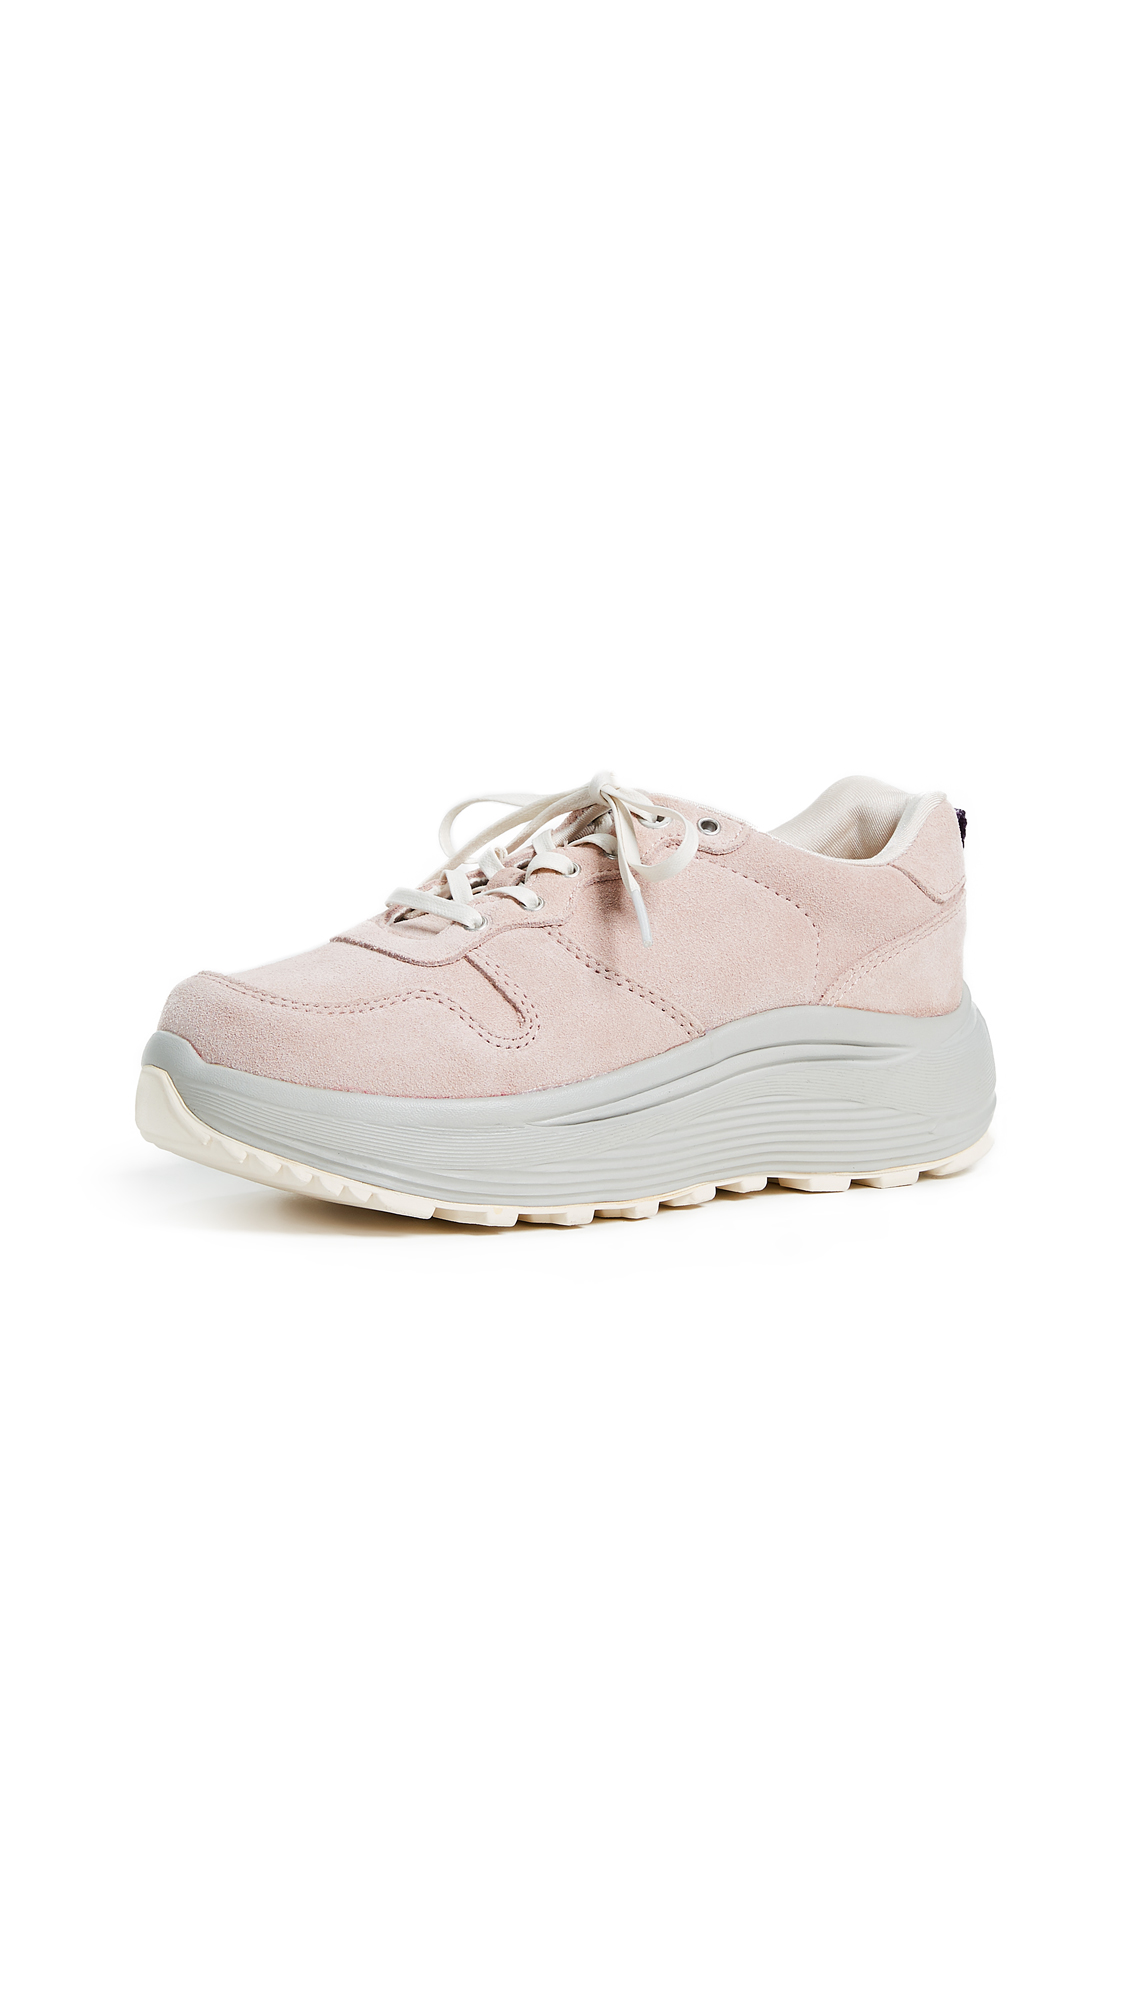 Eytys Jet Combo Sneakers - Powder Pink